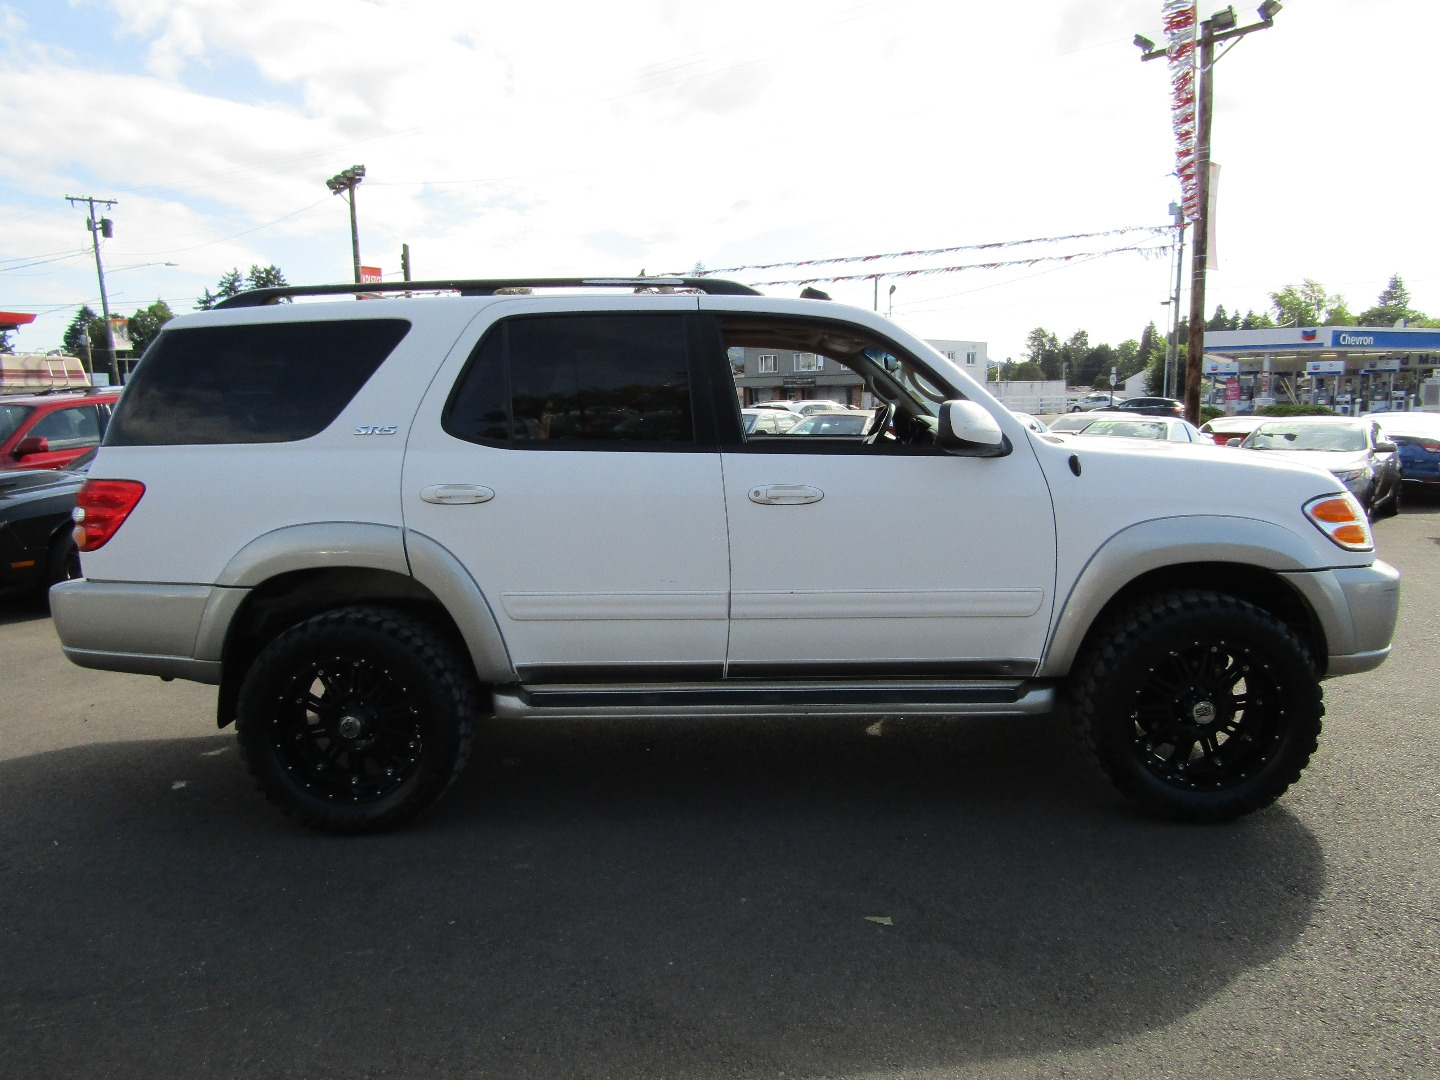 2002 toyota sequoia 4dr sr5 4x4 white 1 owner lifted big wheels tires so sharp volstice auto dealership in milwaukie 2002 toyota sequoia 4dr sr5 4x4